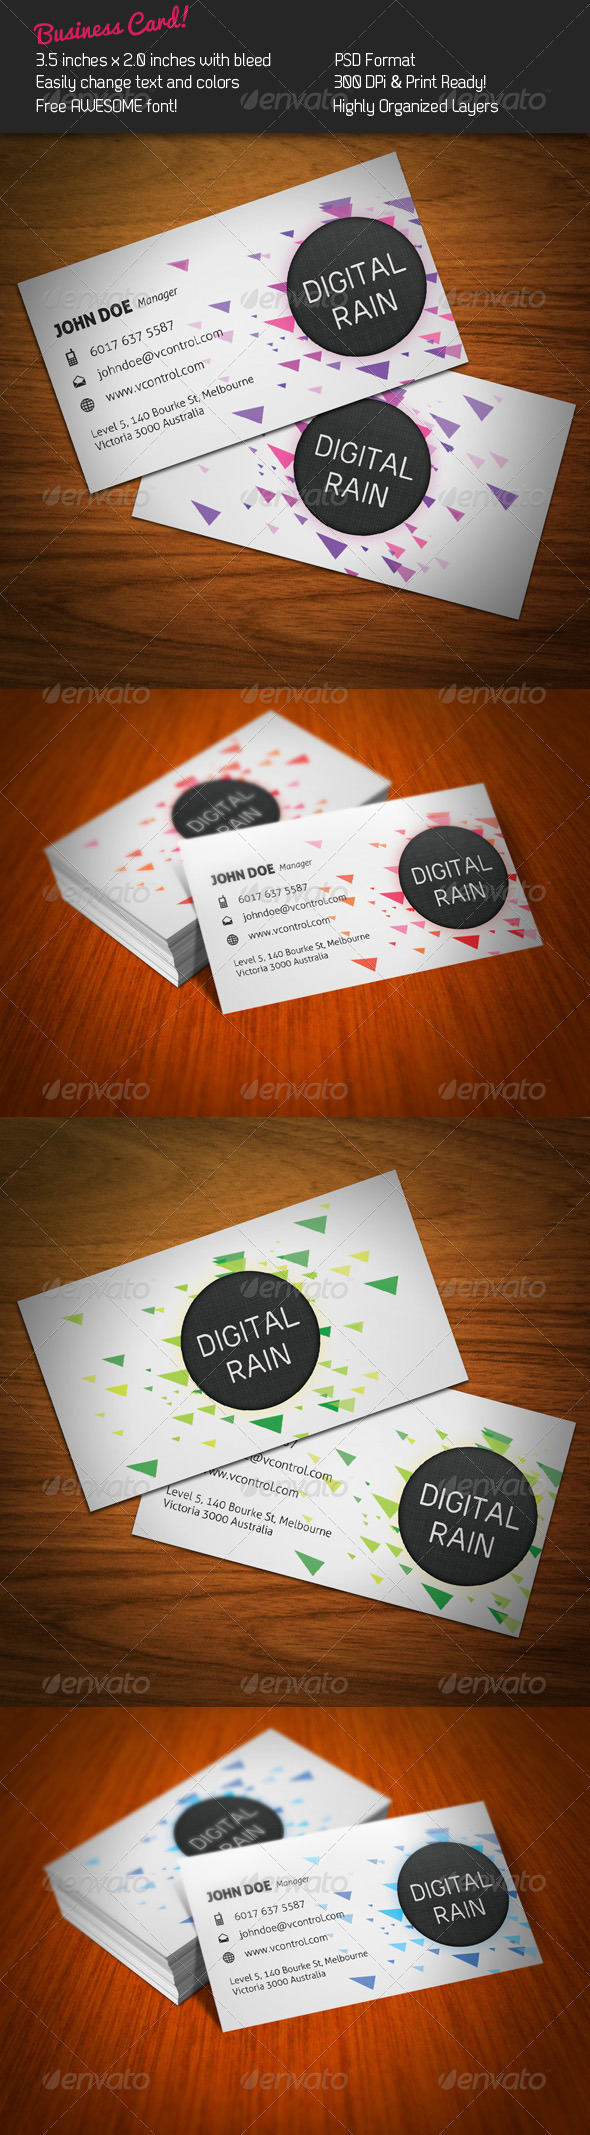 Digital Rain Business Card - Creative Business Cards